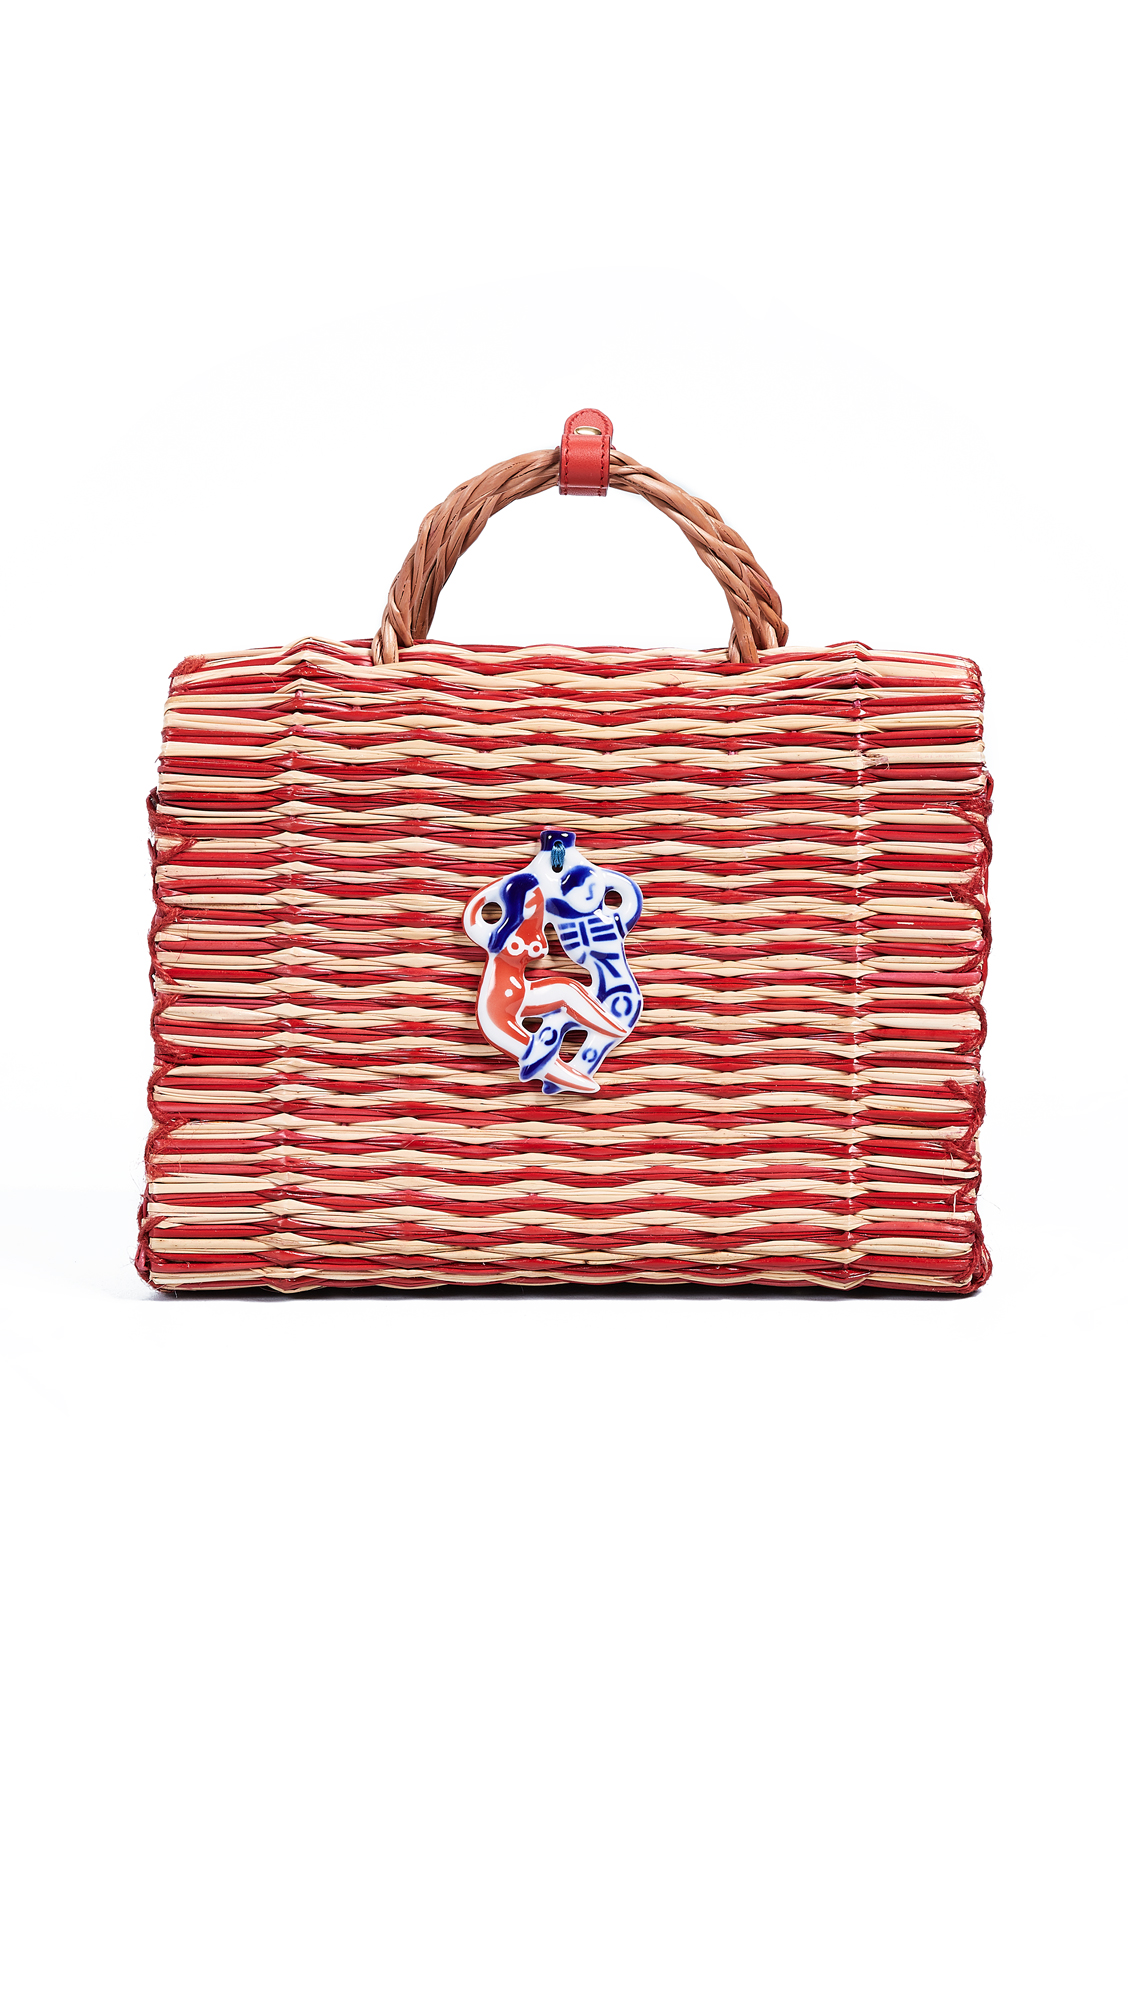 AMORE PICCOLO BAG from Shopbop